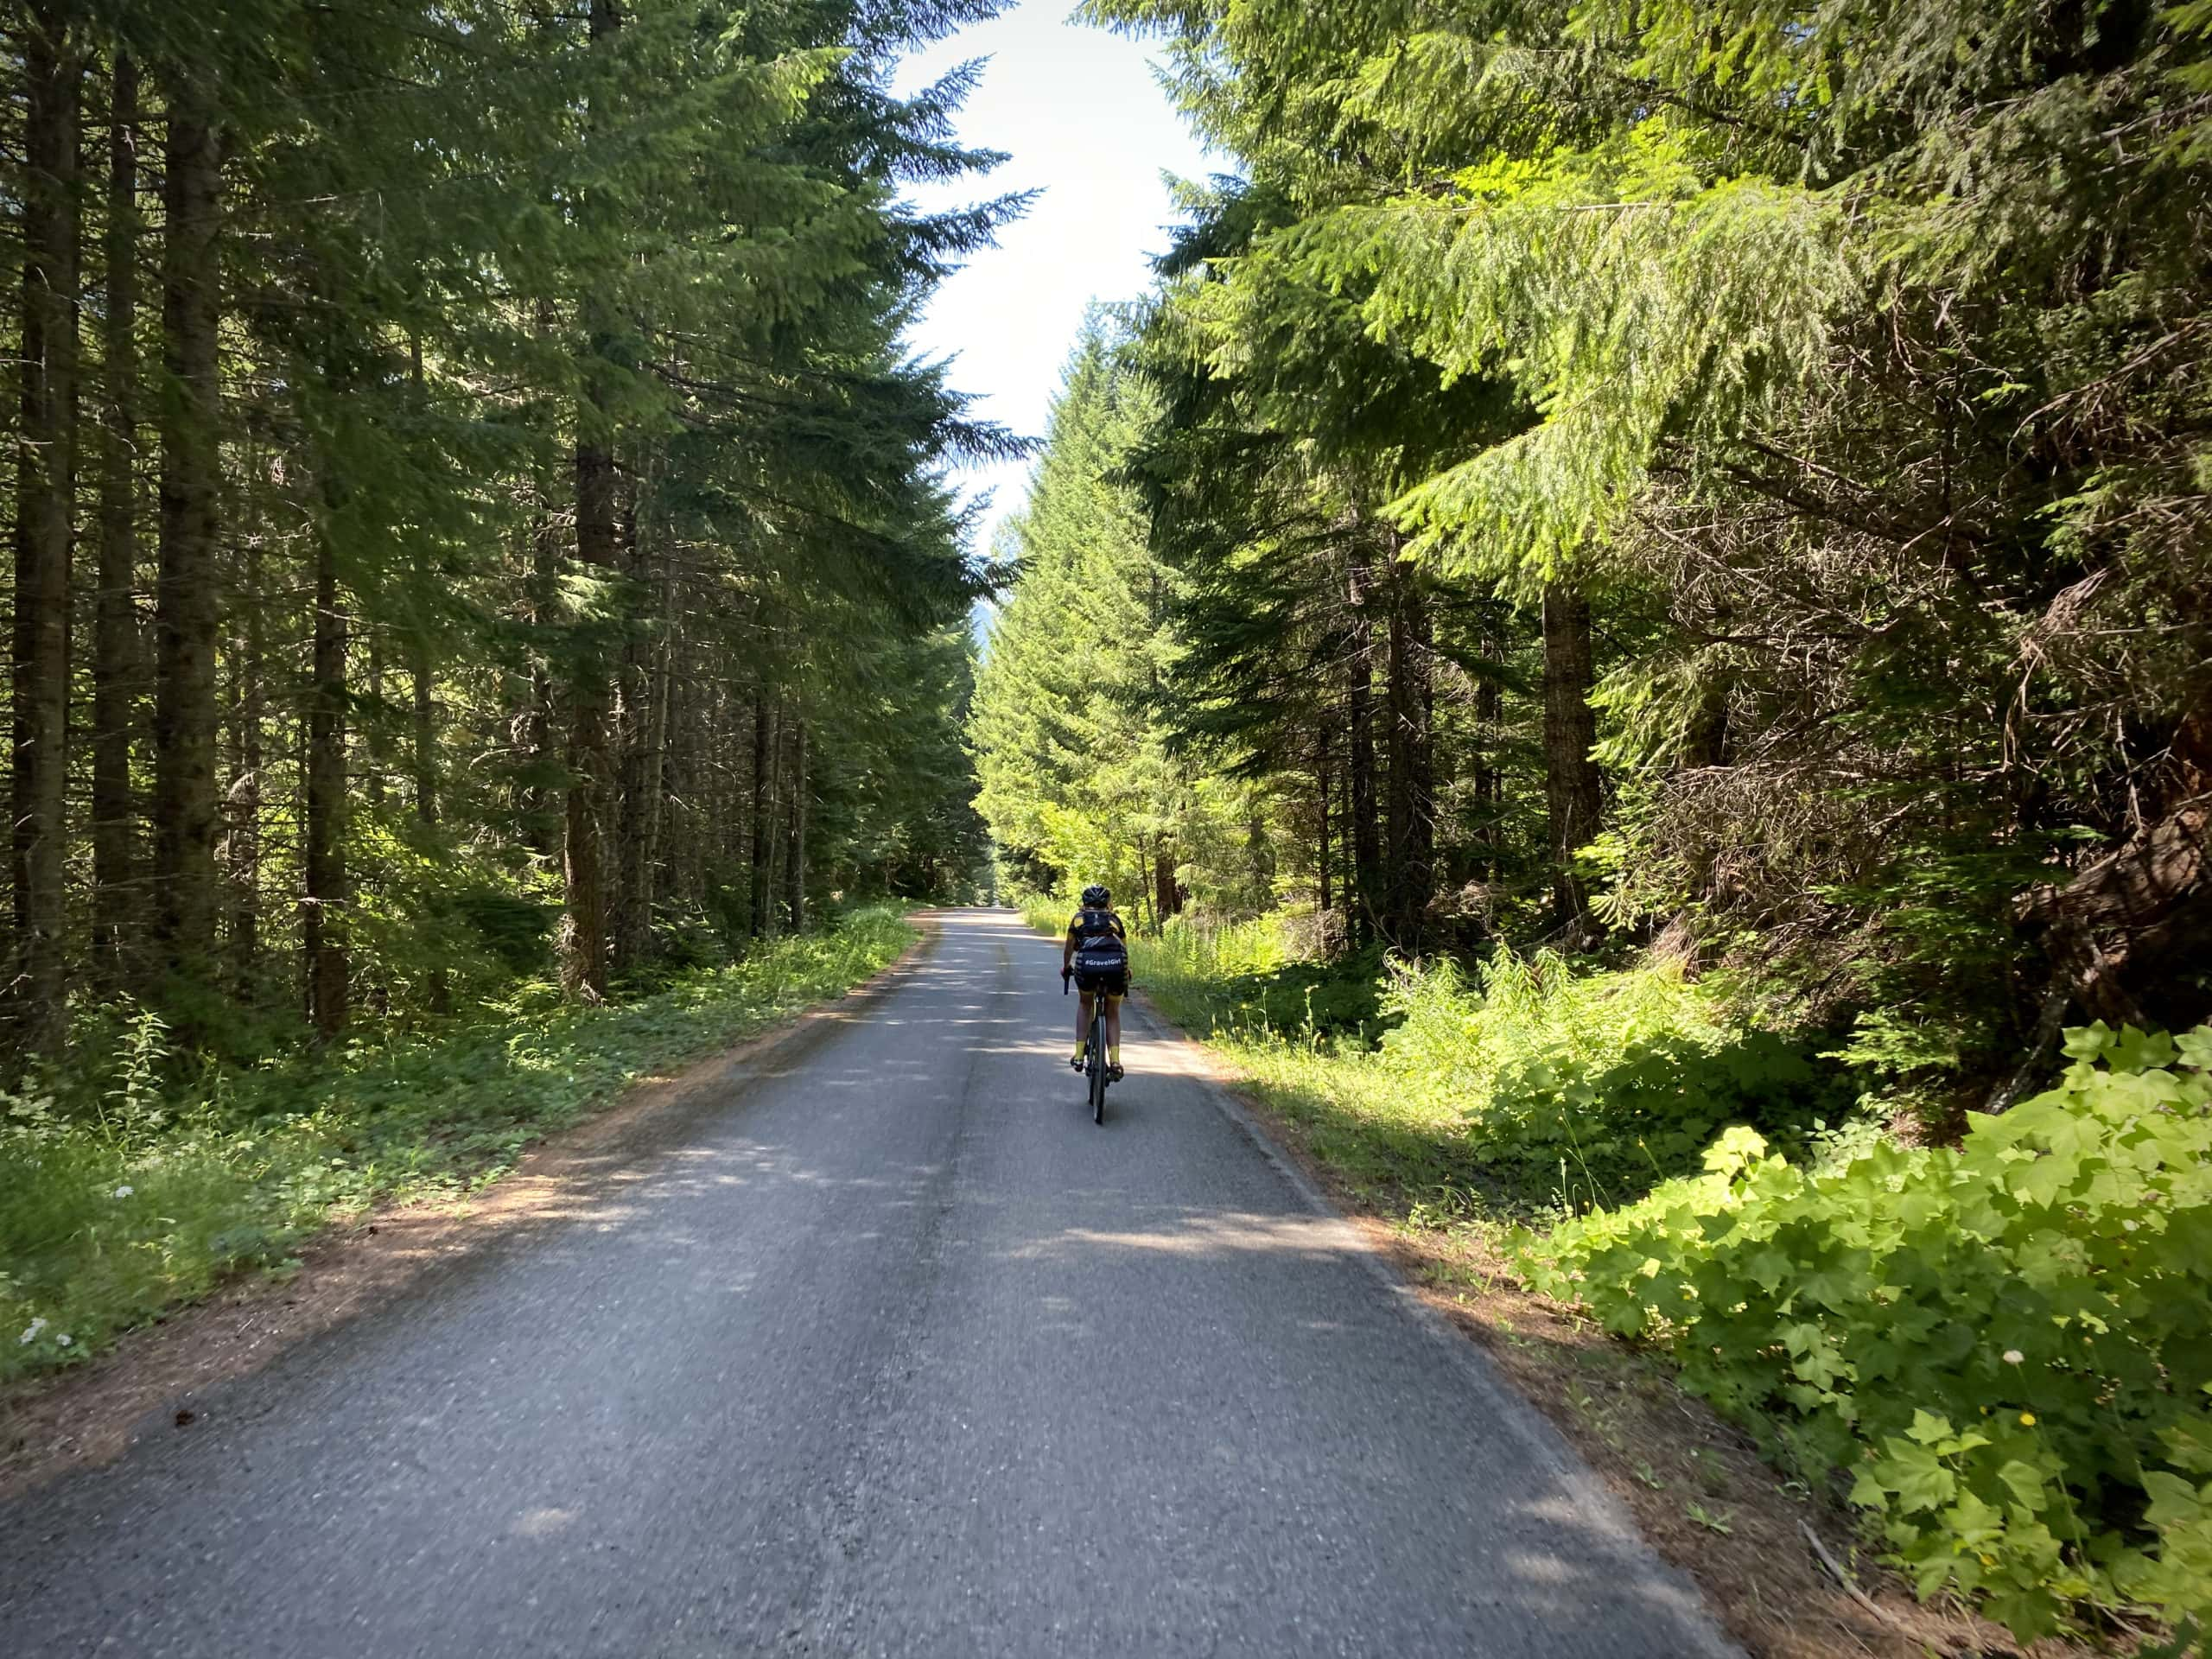 Cyclist on the paved portion of NF 23 along Hills Creek near Oakridge, OR.